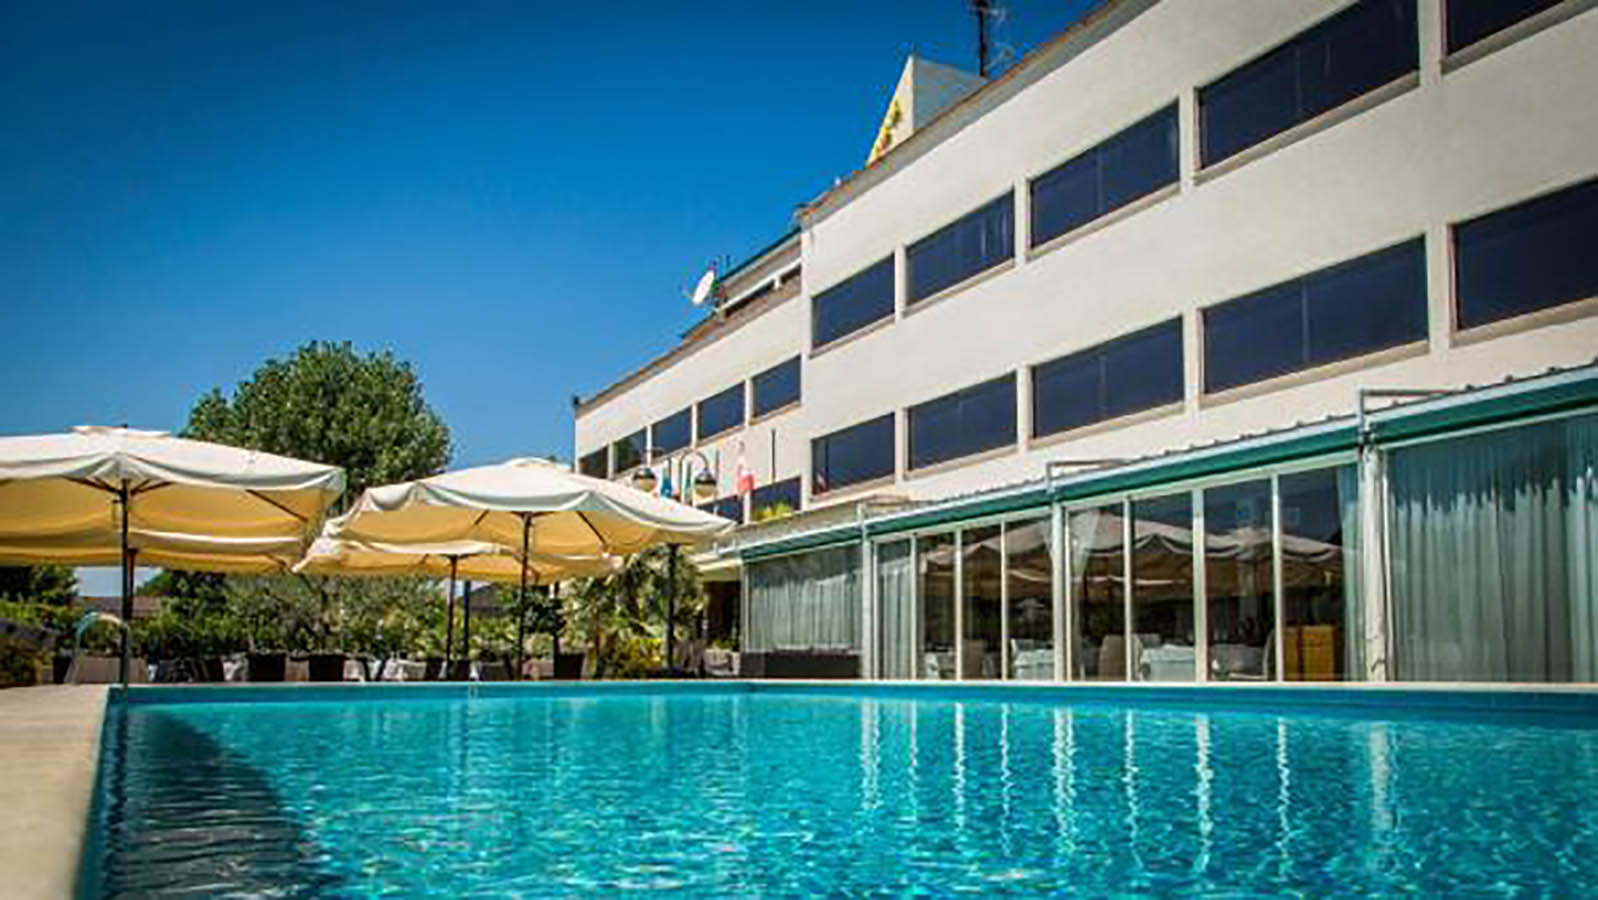 Tivoli (RM) - Hotel Cristallo Relais, Sure Hotel Collection by Best Western